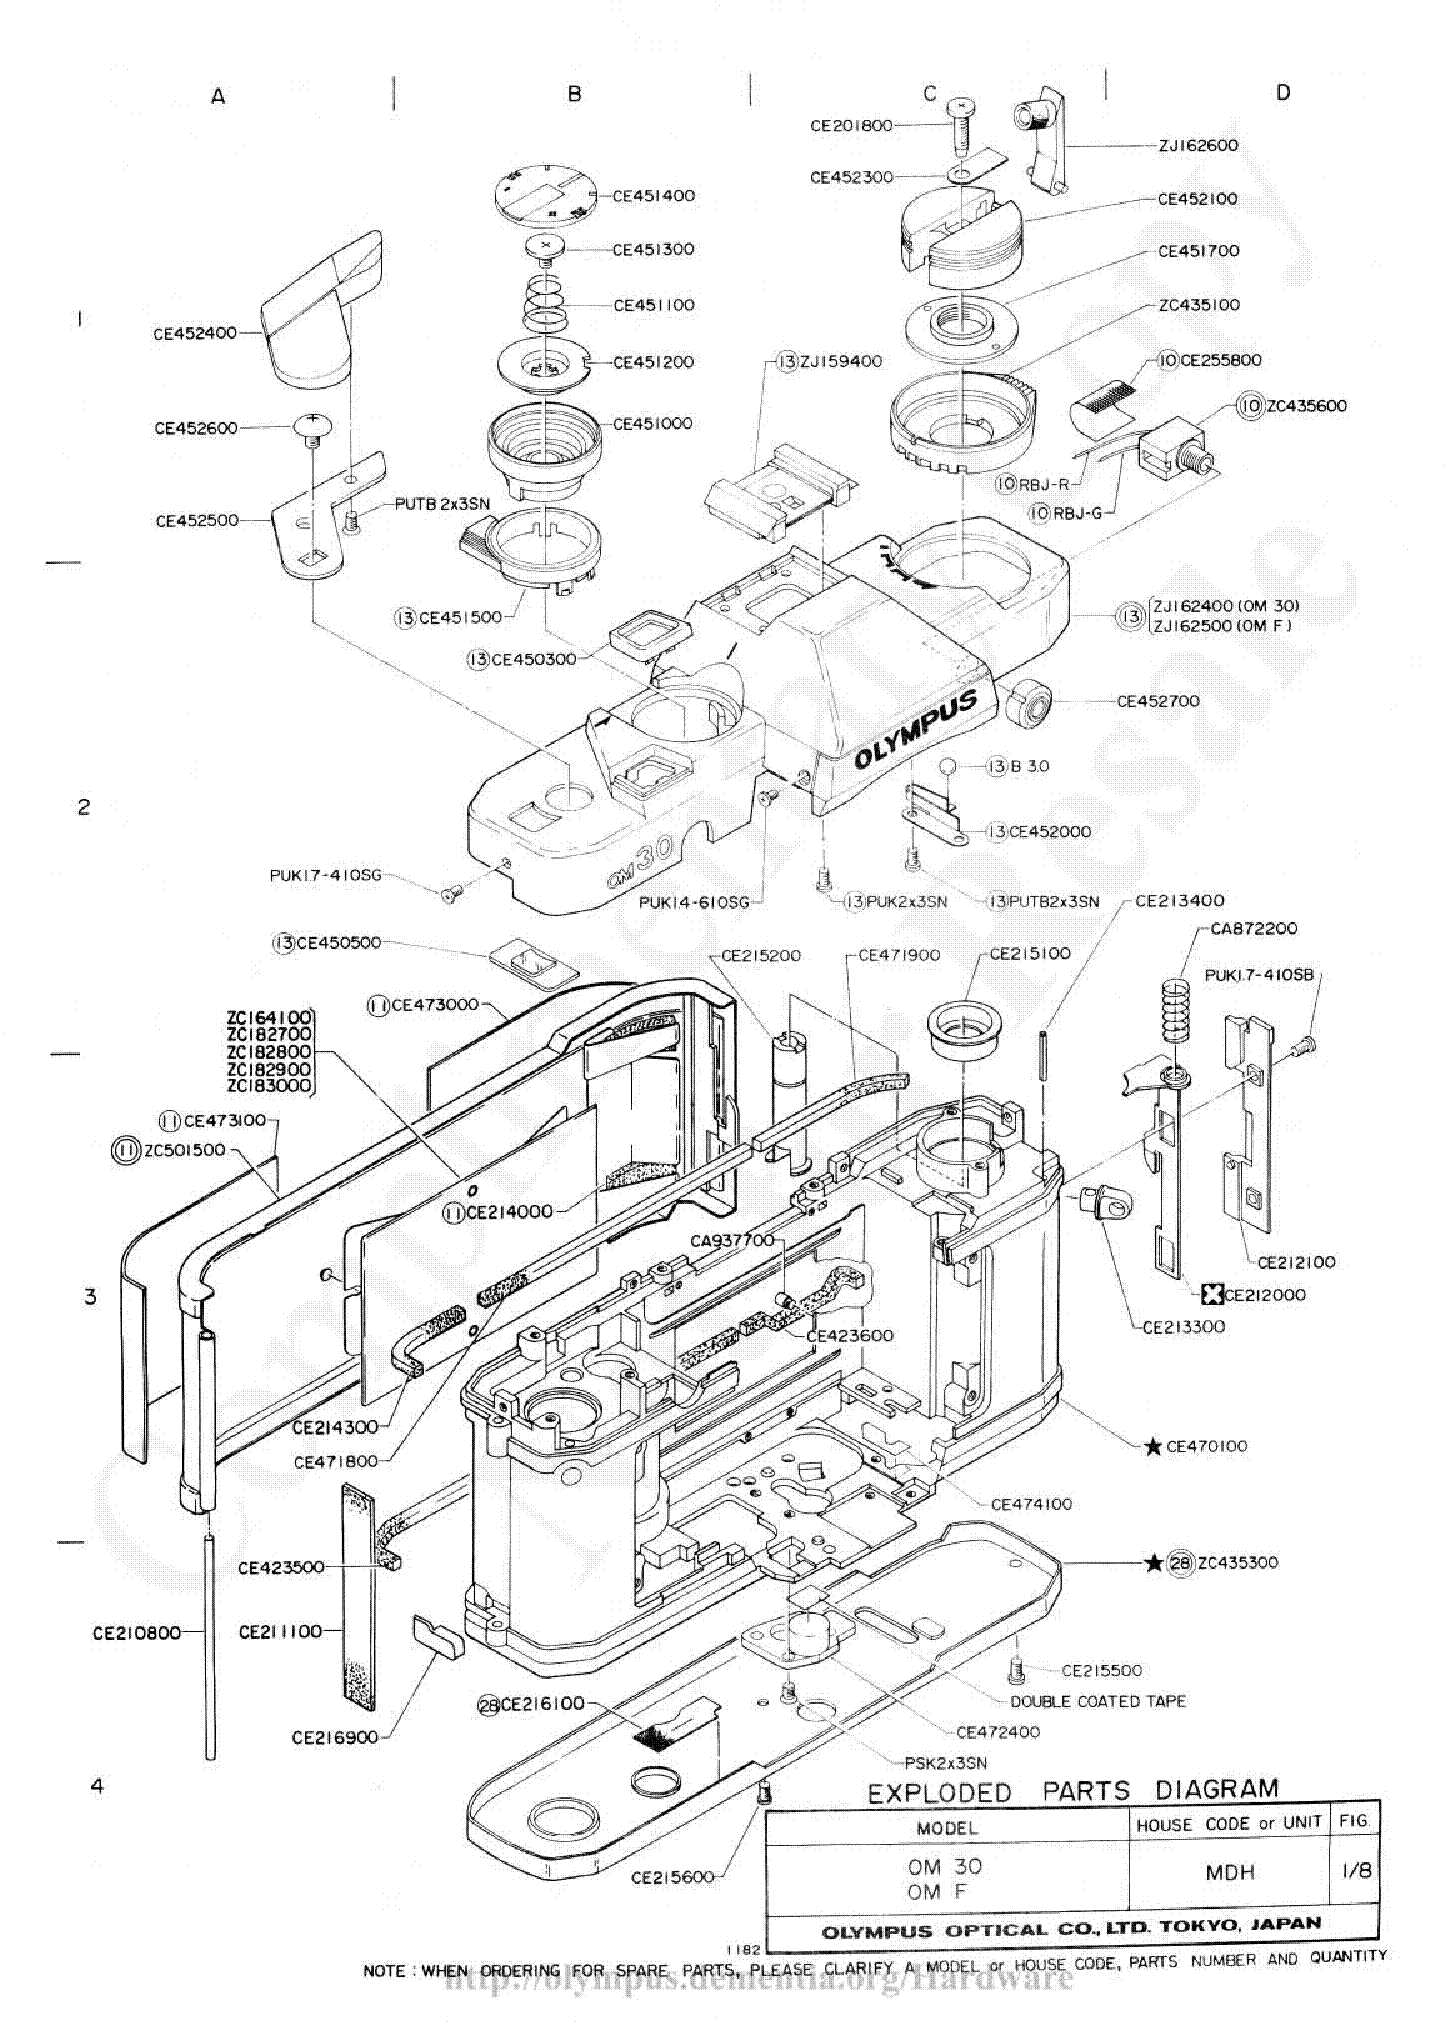 Olympus Om 30 Exploded Parts Diagram Service Manual